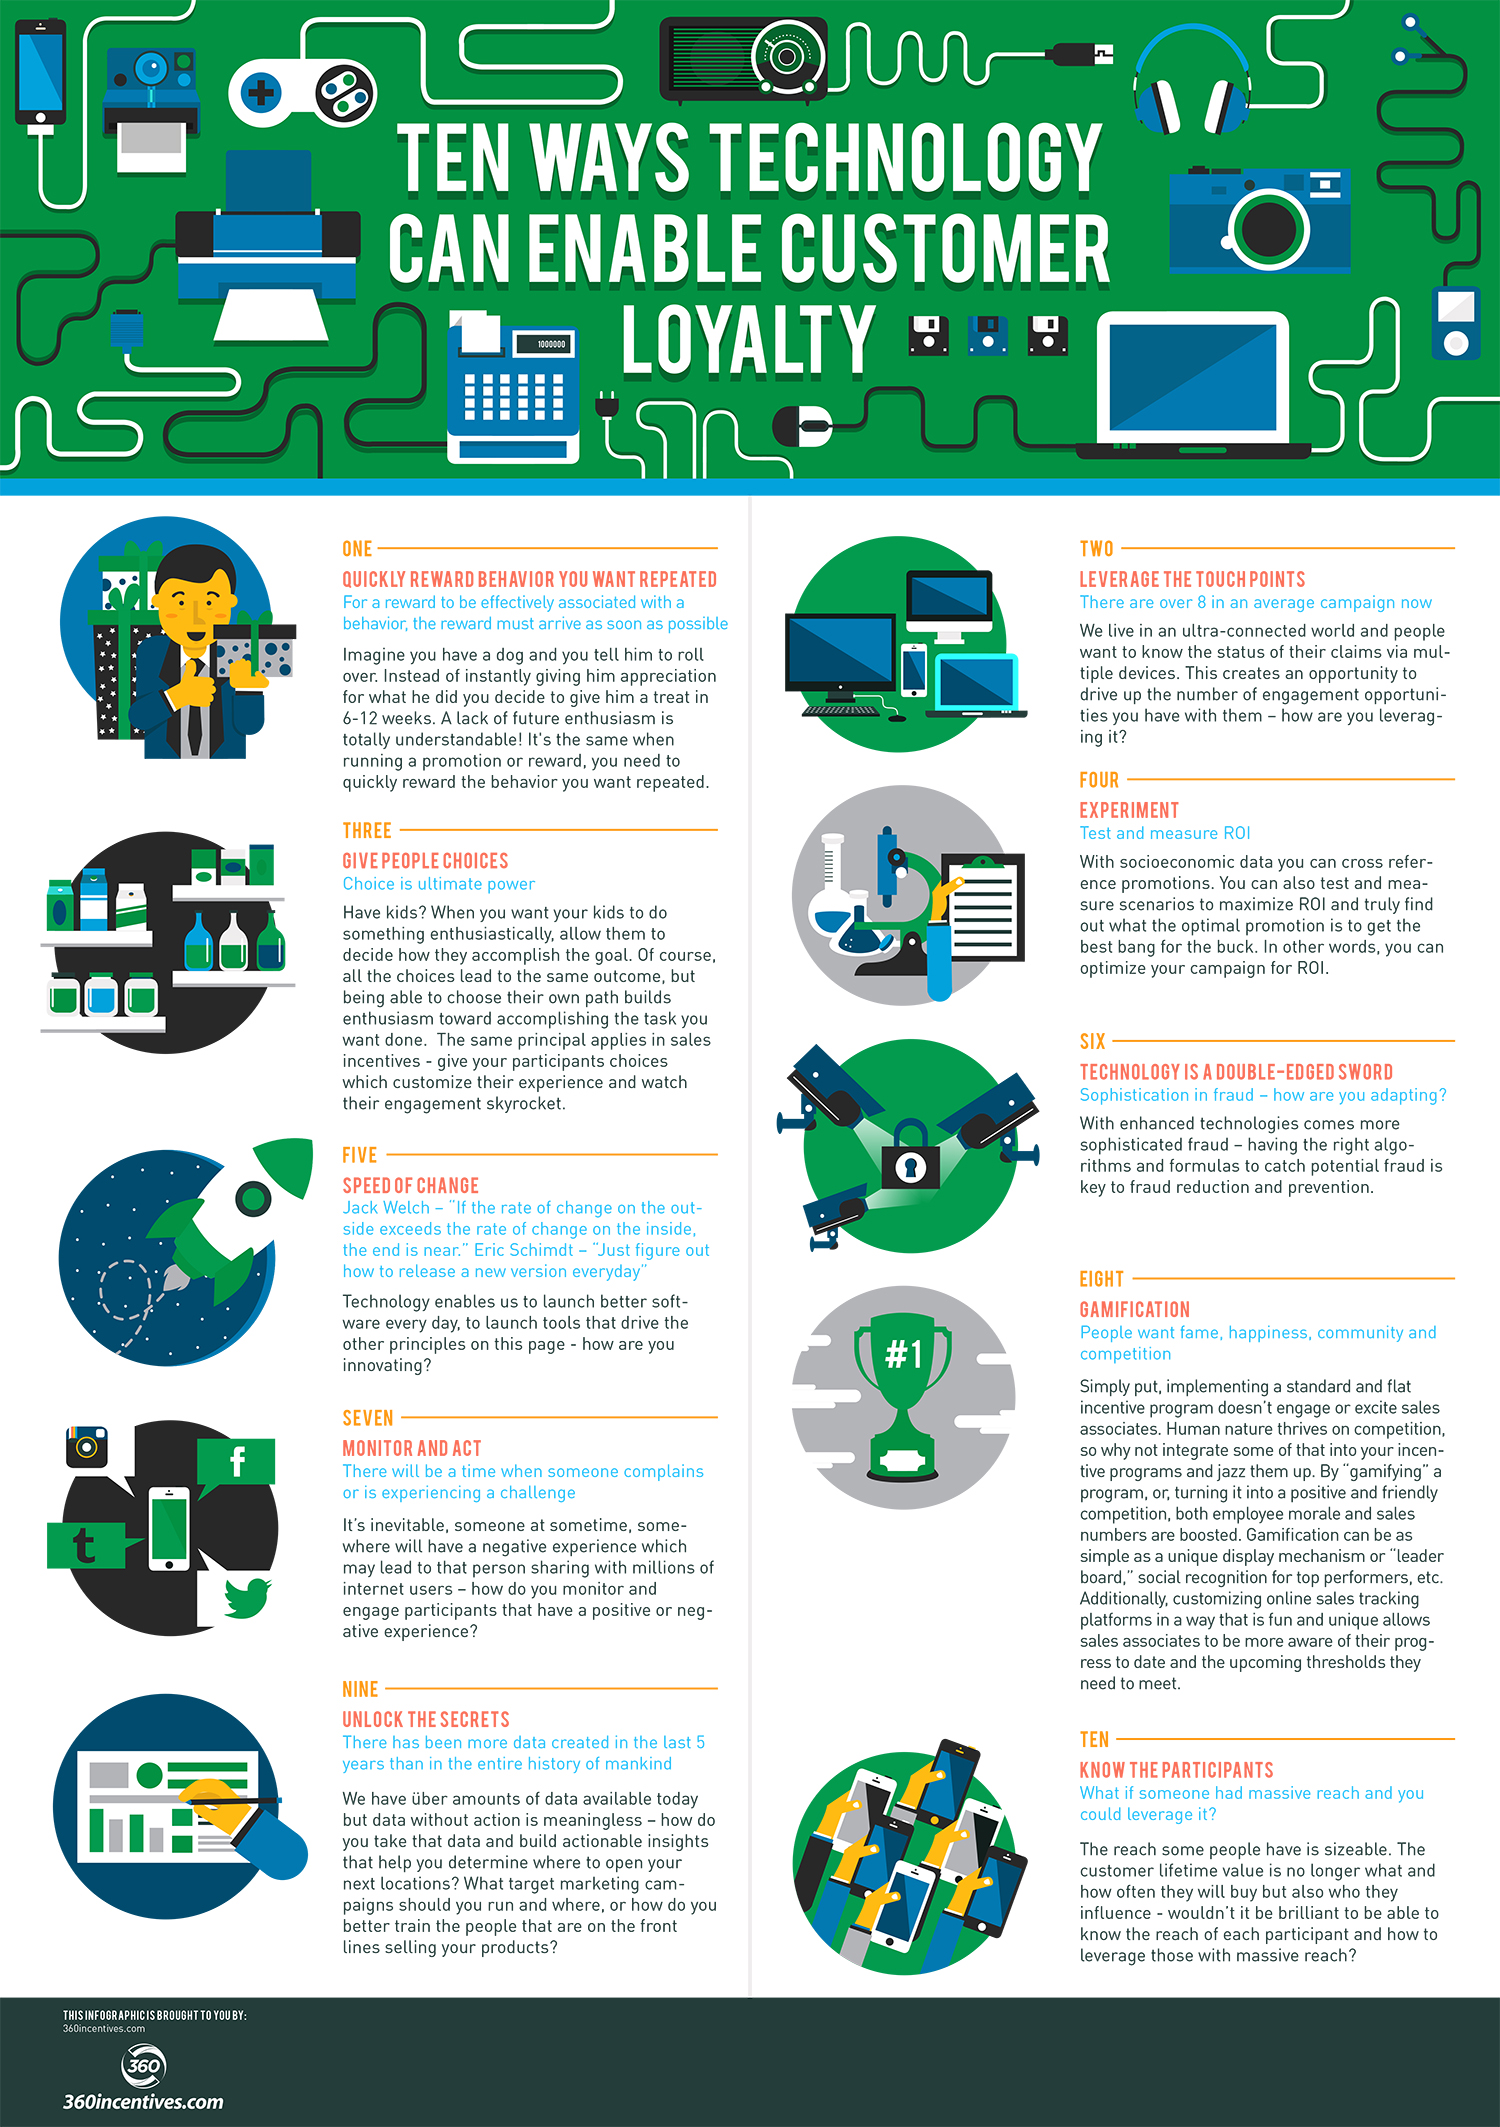 10 Ways Technology Can Enable Customer Loyalty